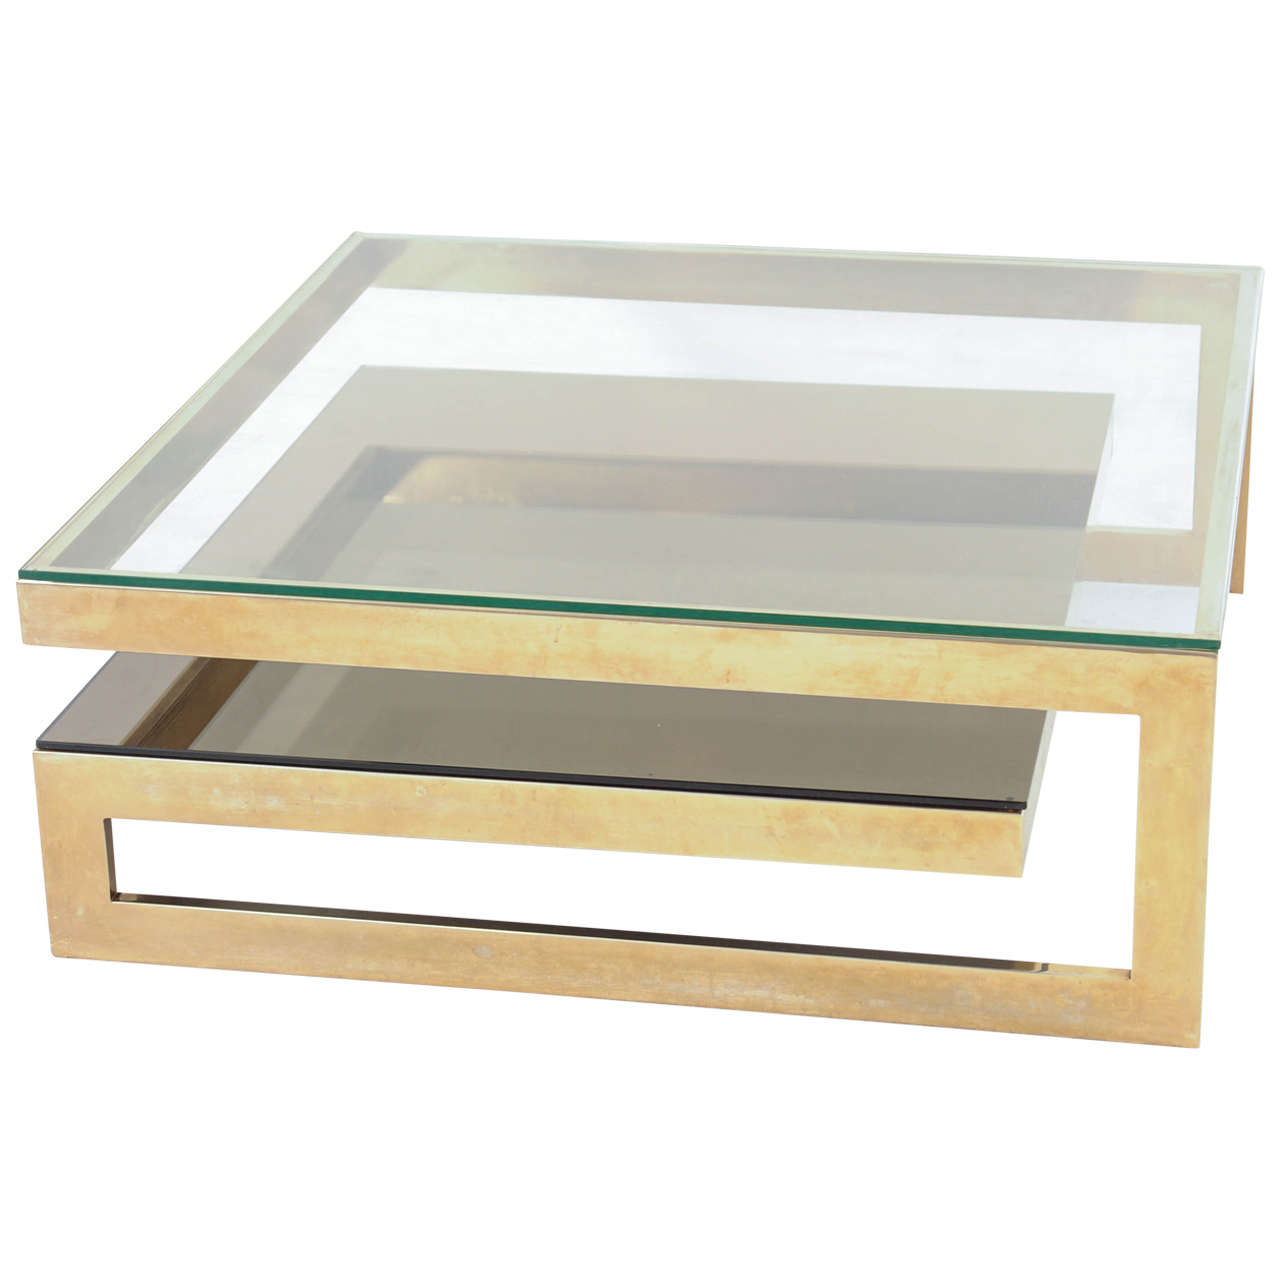 G Shaped 23 Carat Gold Plated Coffee Table At 1stdibs